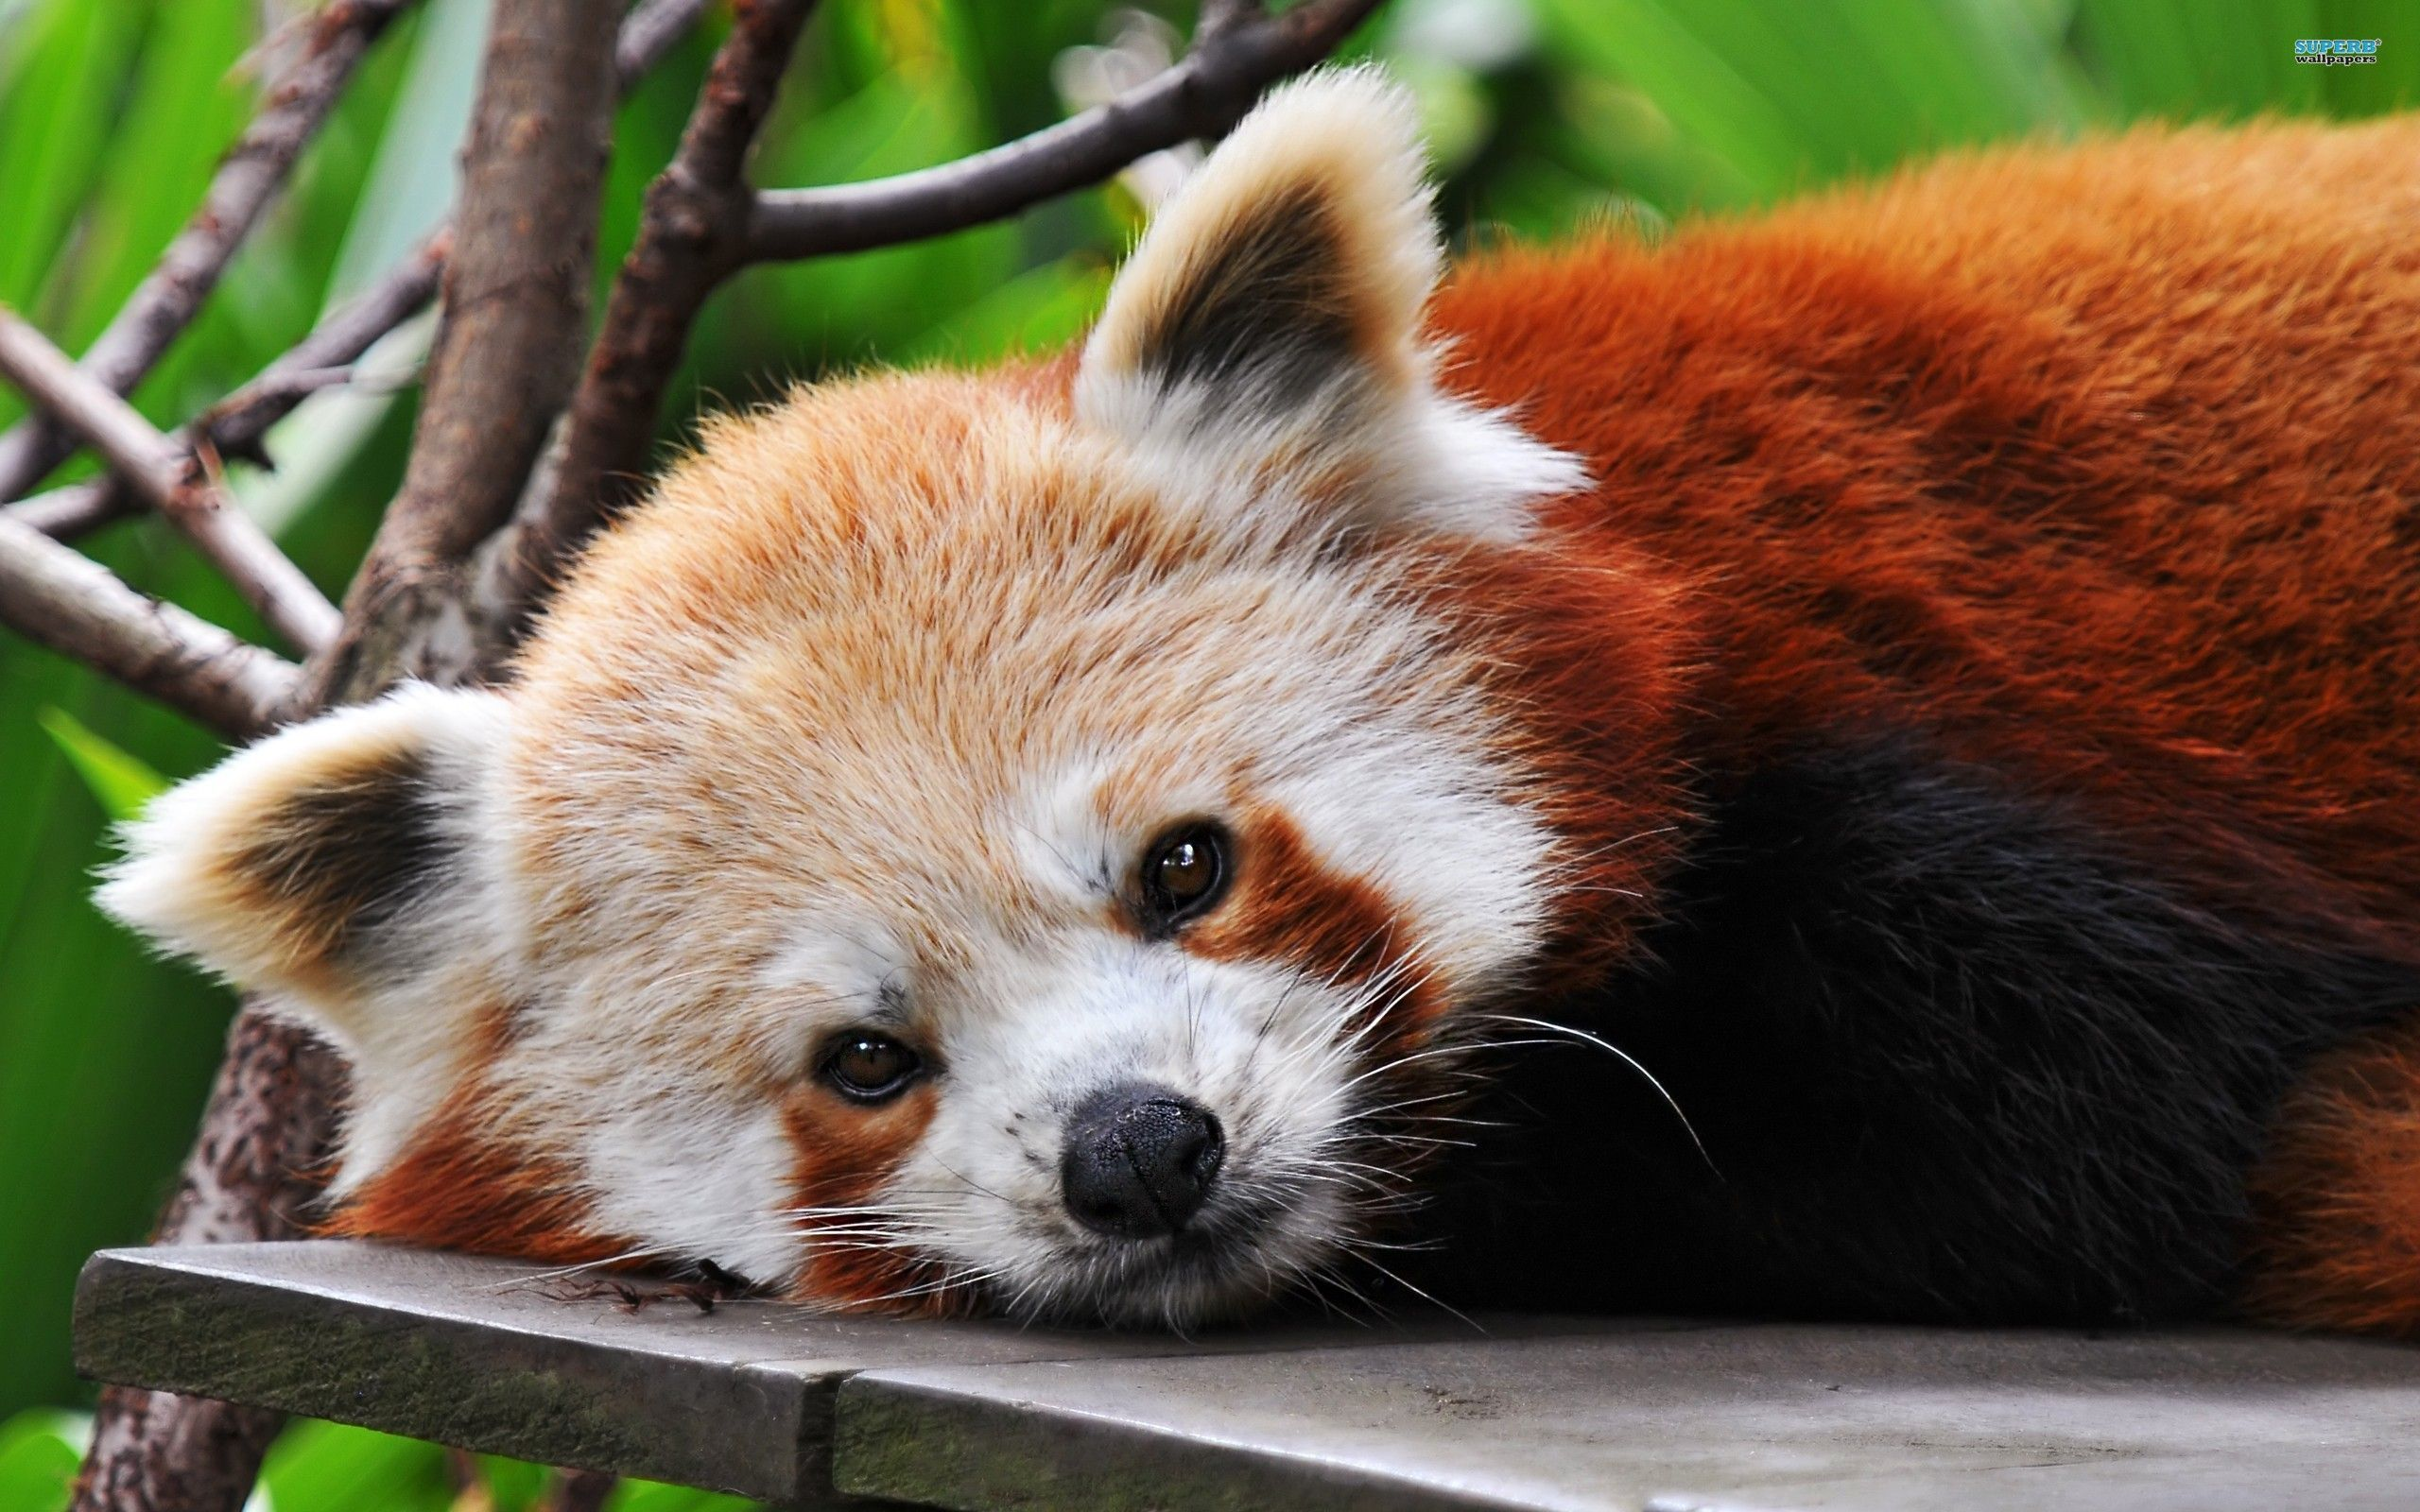 Red Panda Wallpapers High Resolution With Wallpaper Hd Resolution On Animals Category Similar With Abstract Anime Baby Cute Animals Red Panda Images Red Panda